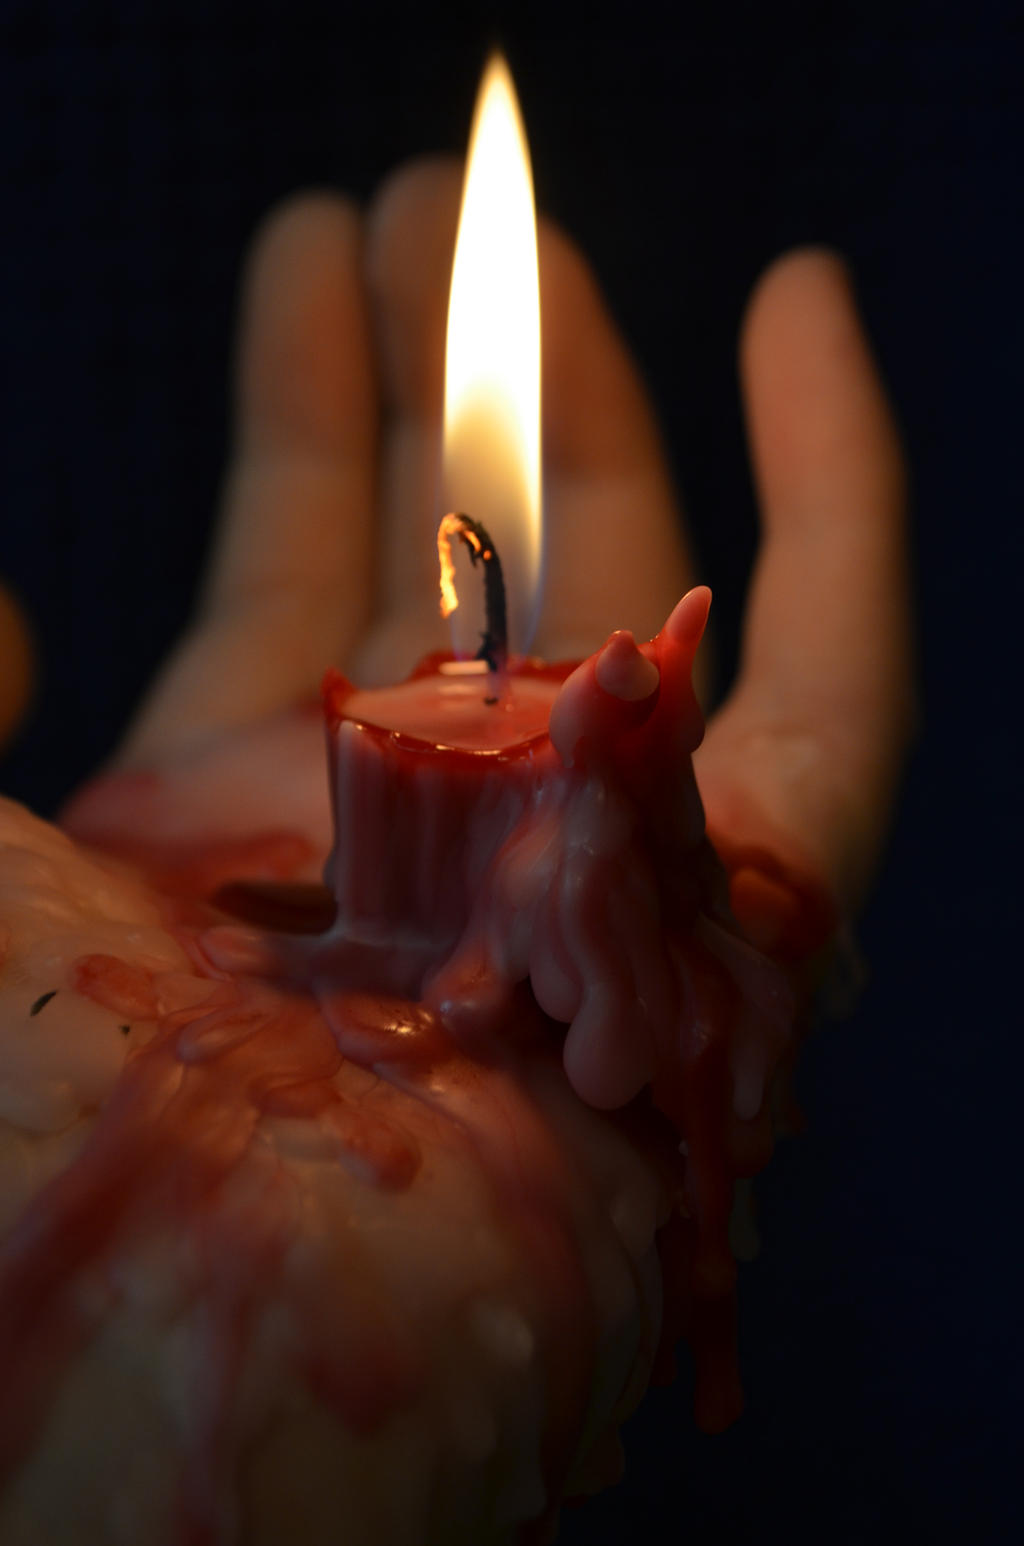 Drippy Candle 40 by RachgracehStock